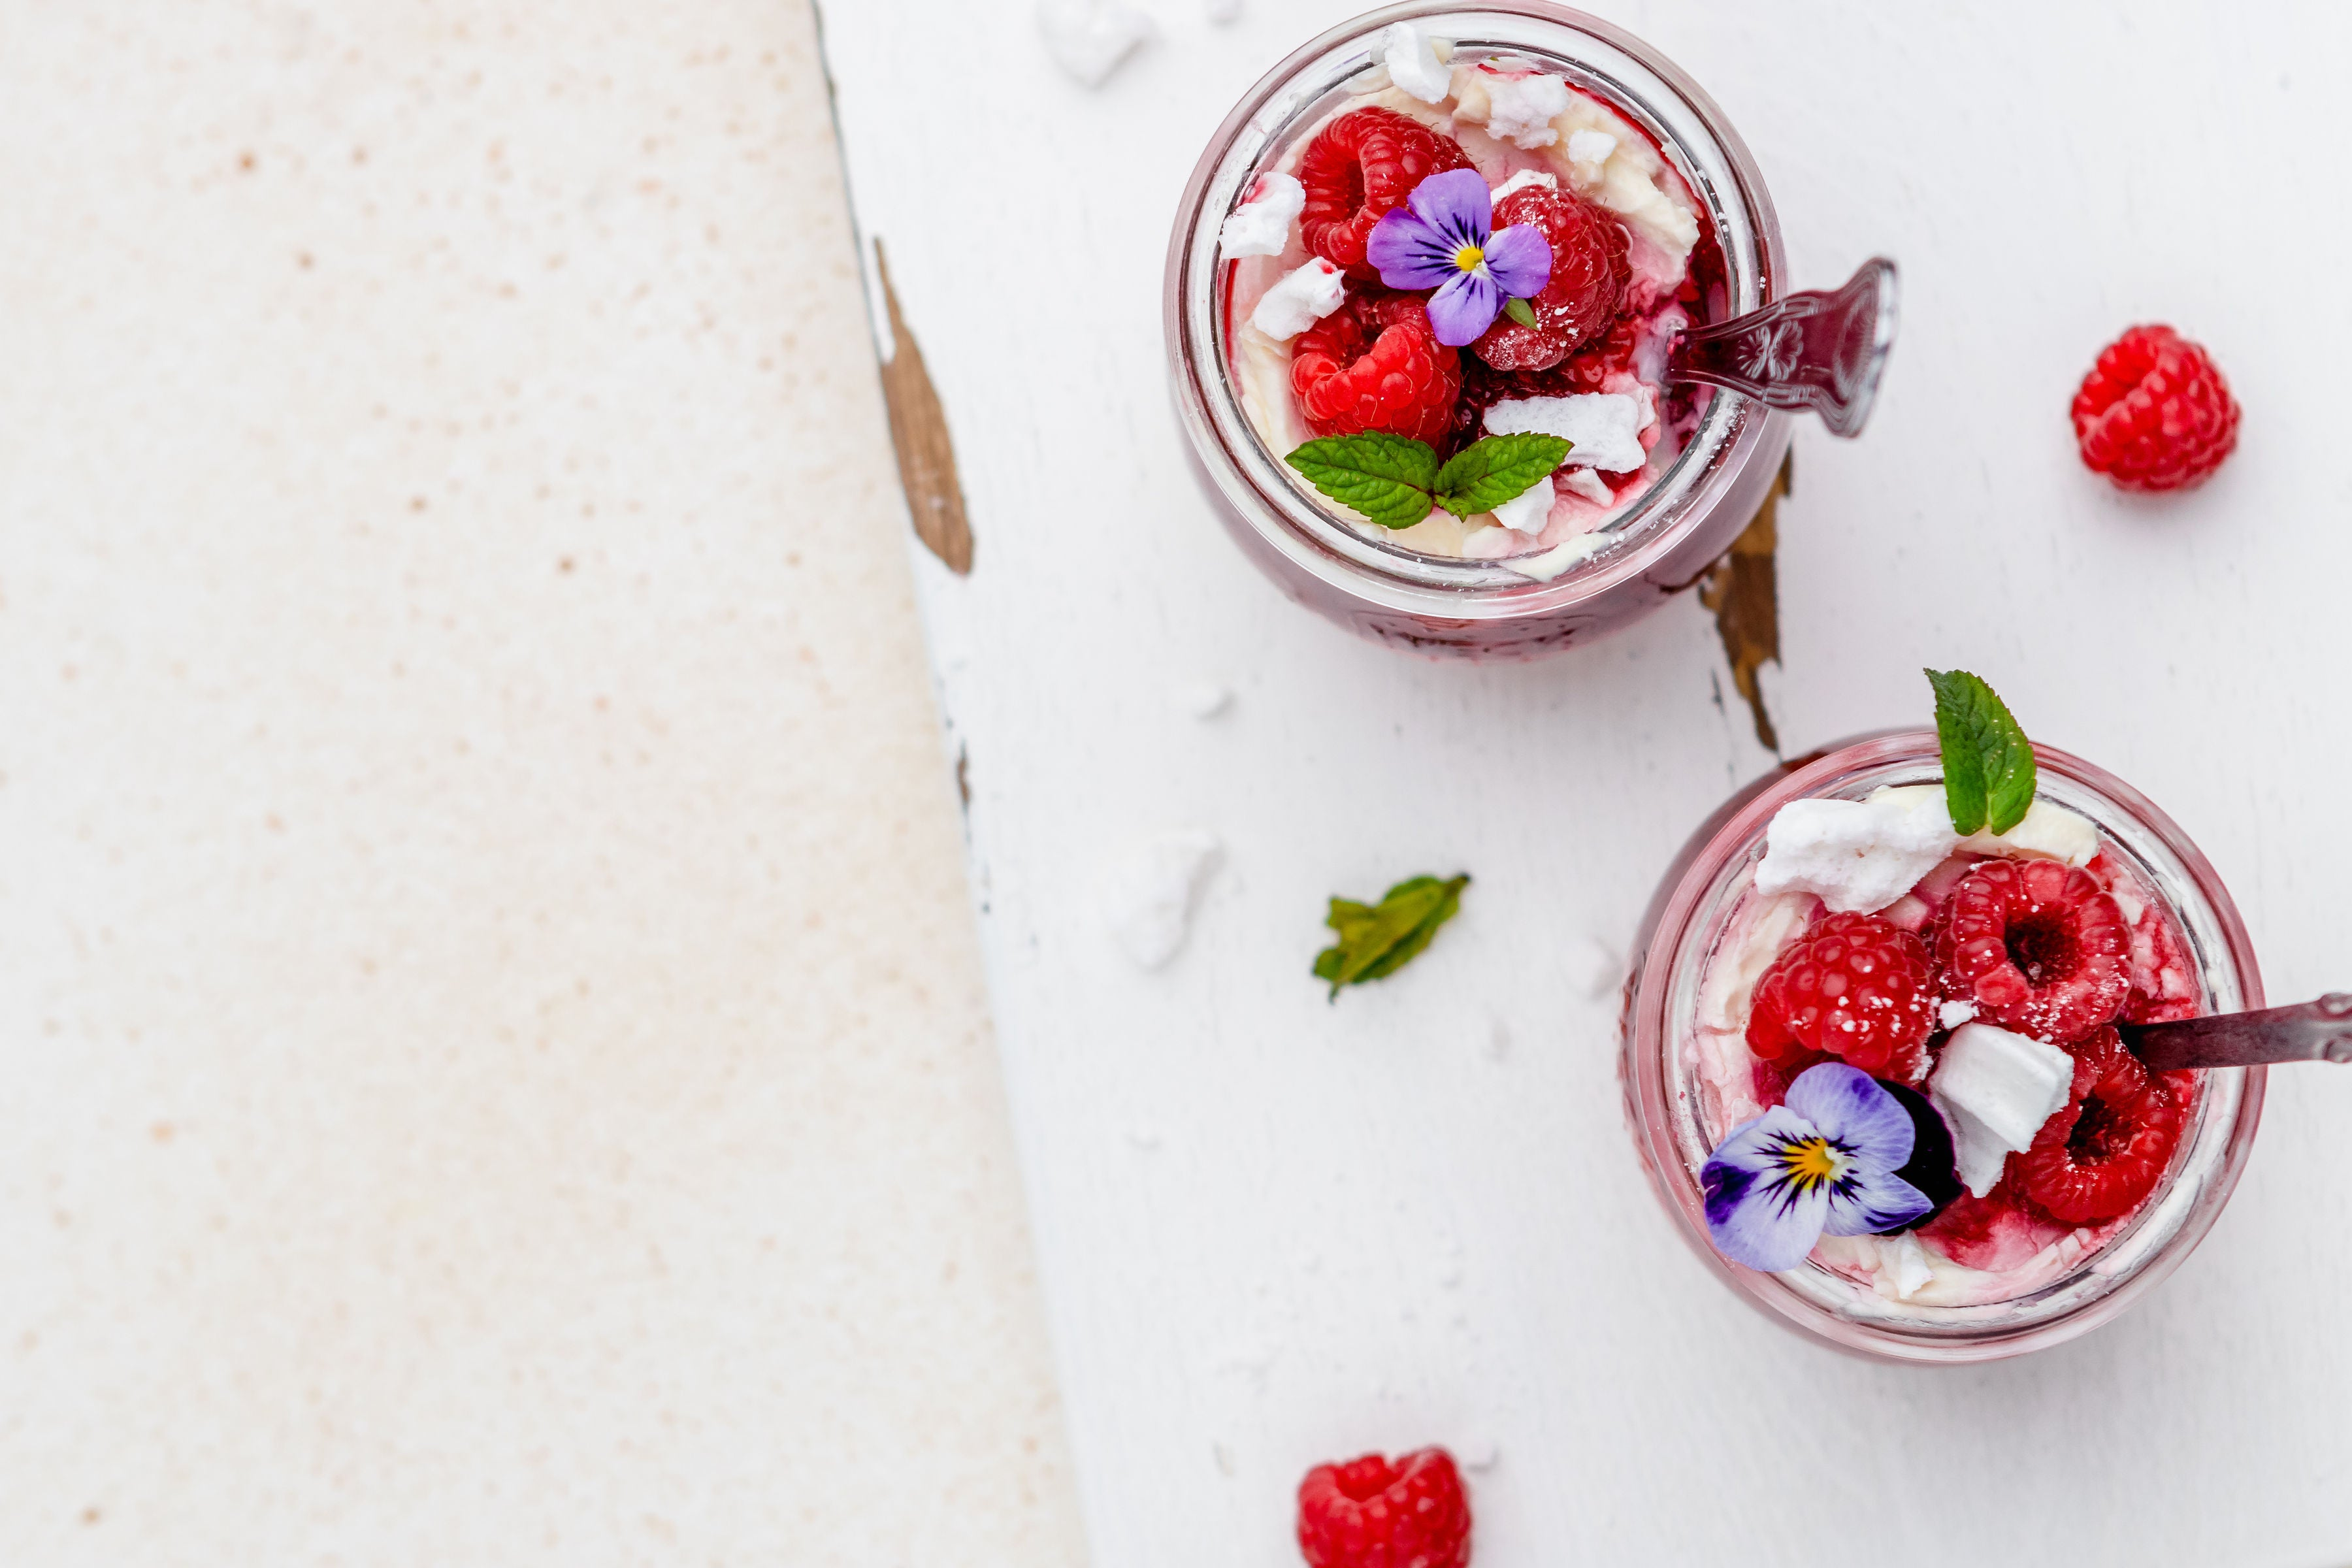 Overhead shot of two eton mess topped with raspberries and flowers